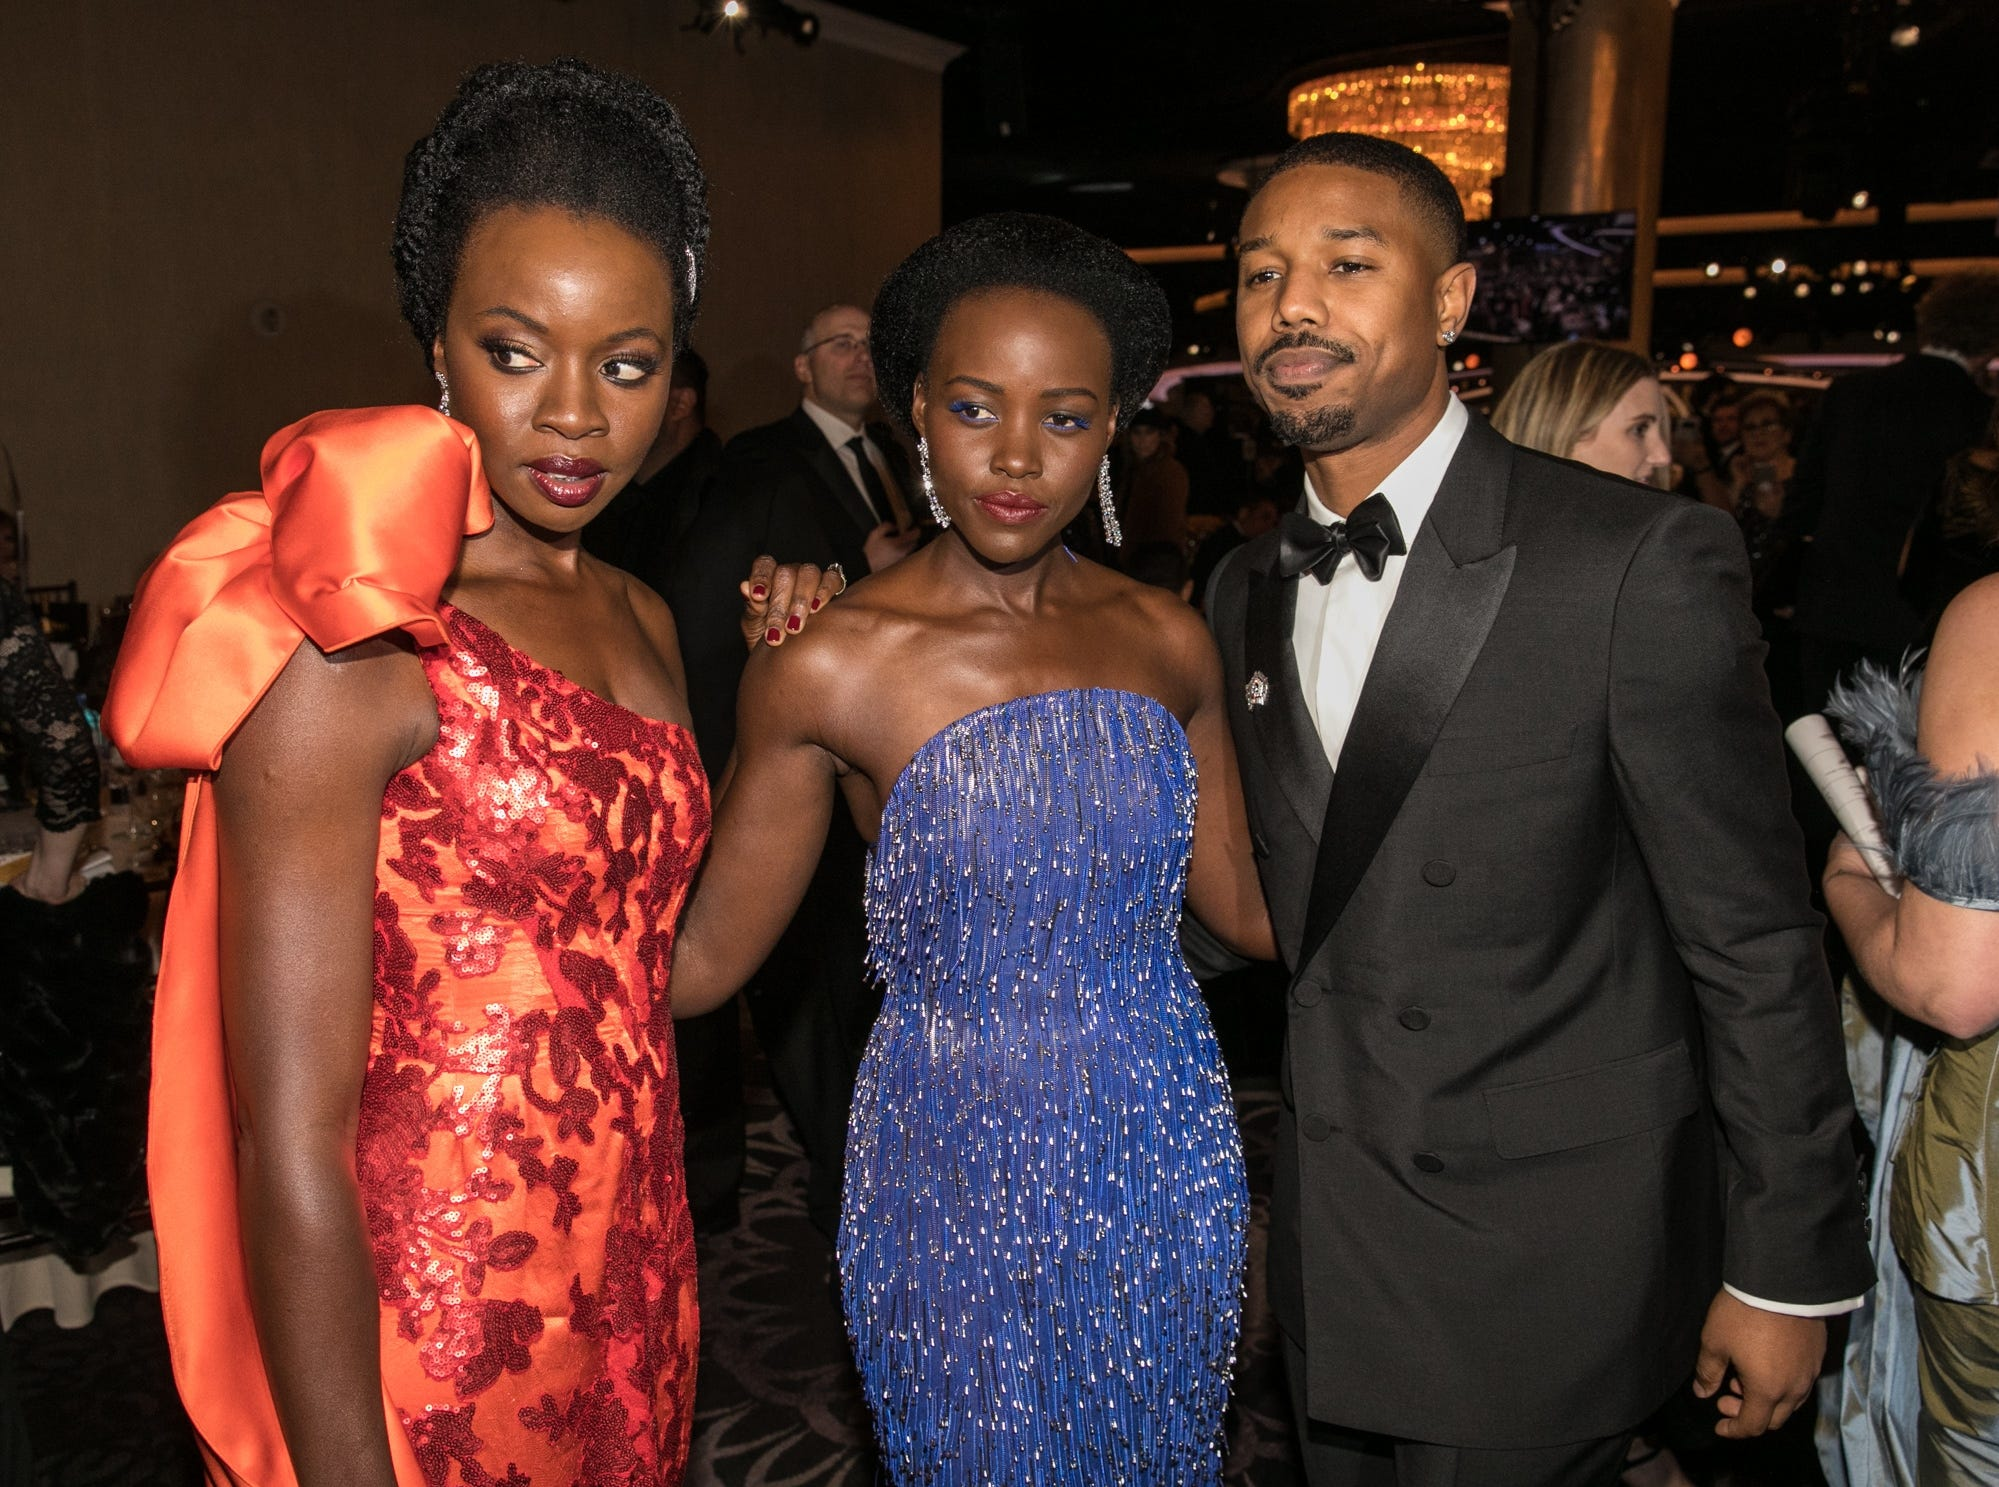 Jan 6, 2019; Beverly Hills, CA, USA; From left to right, Danai Gurira, Lupita Nyong'o and Michael B. Jordan, arrive during the 76th Golden Globe Awards in the International Ballroom at the Beverly Hilton. Mandatory Credit: David Sprague-USA TODAY (Via OlyDrop)